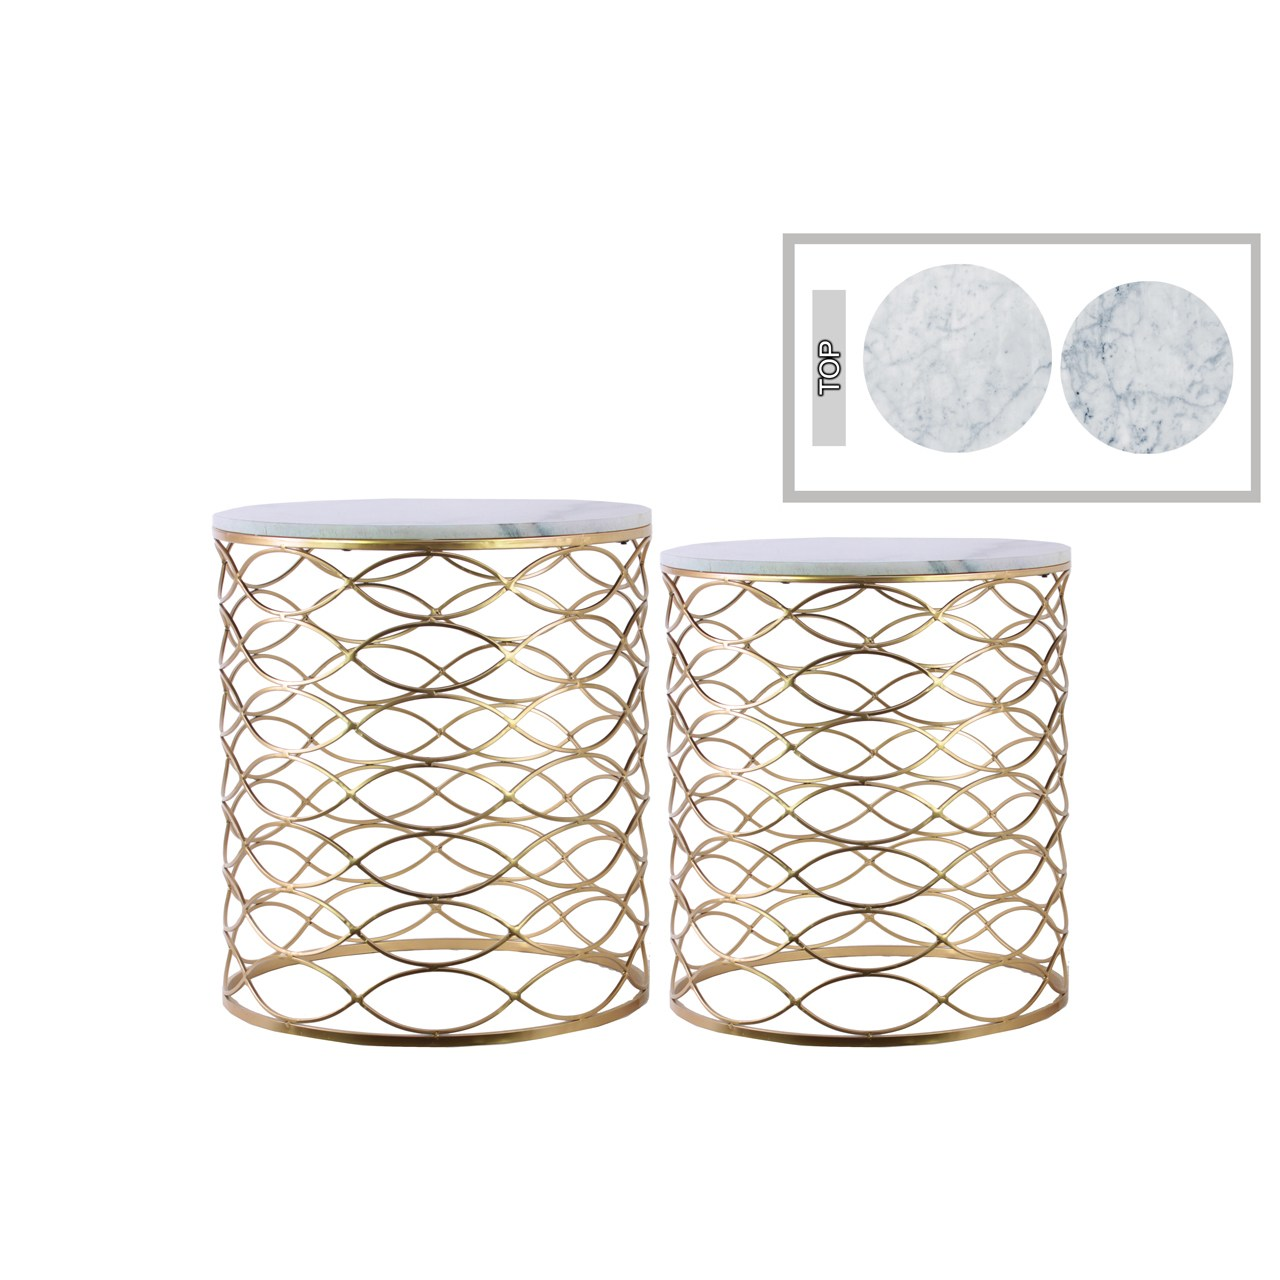 urban trends gold metallic finish metal round marble top nesting accent table with and lattice wave design body set two piece free shipping today teak dining cherry wood small